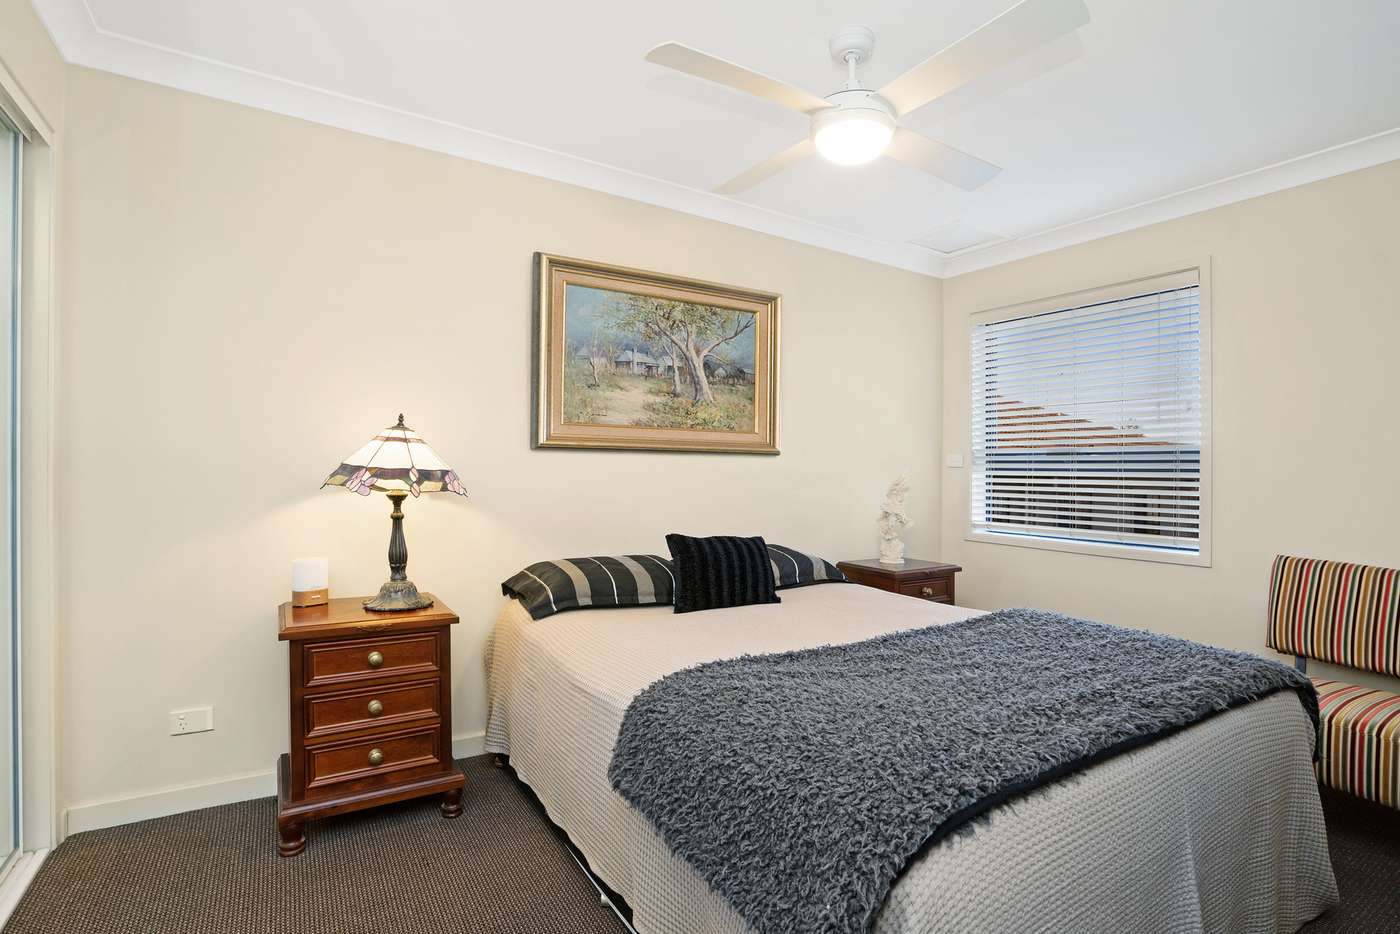 Fifth view of Homely apartment listing, 9/278 Darby Street, Cooks Hill NSW 2300